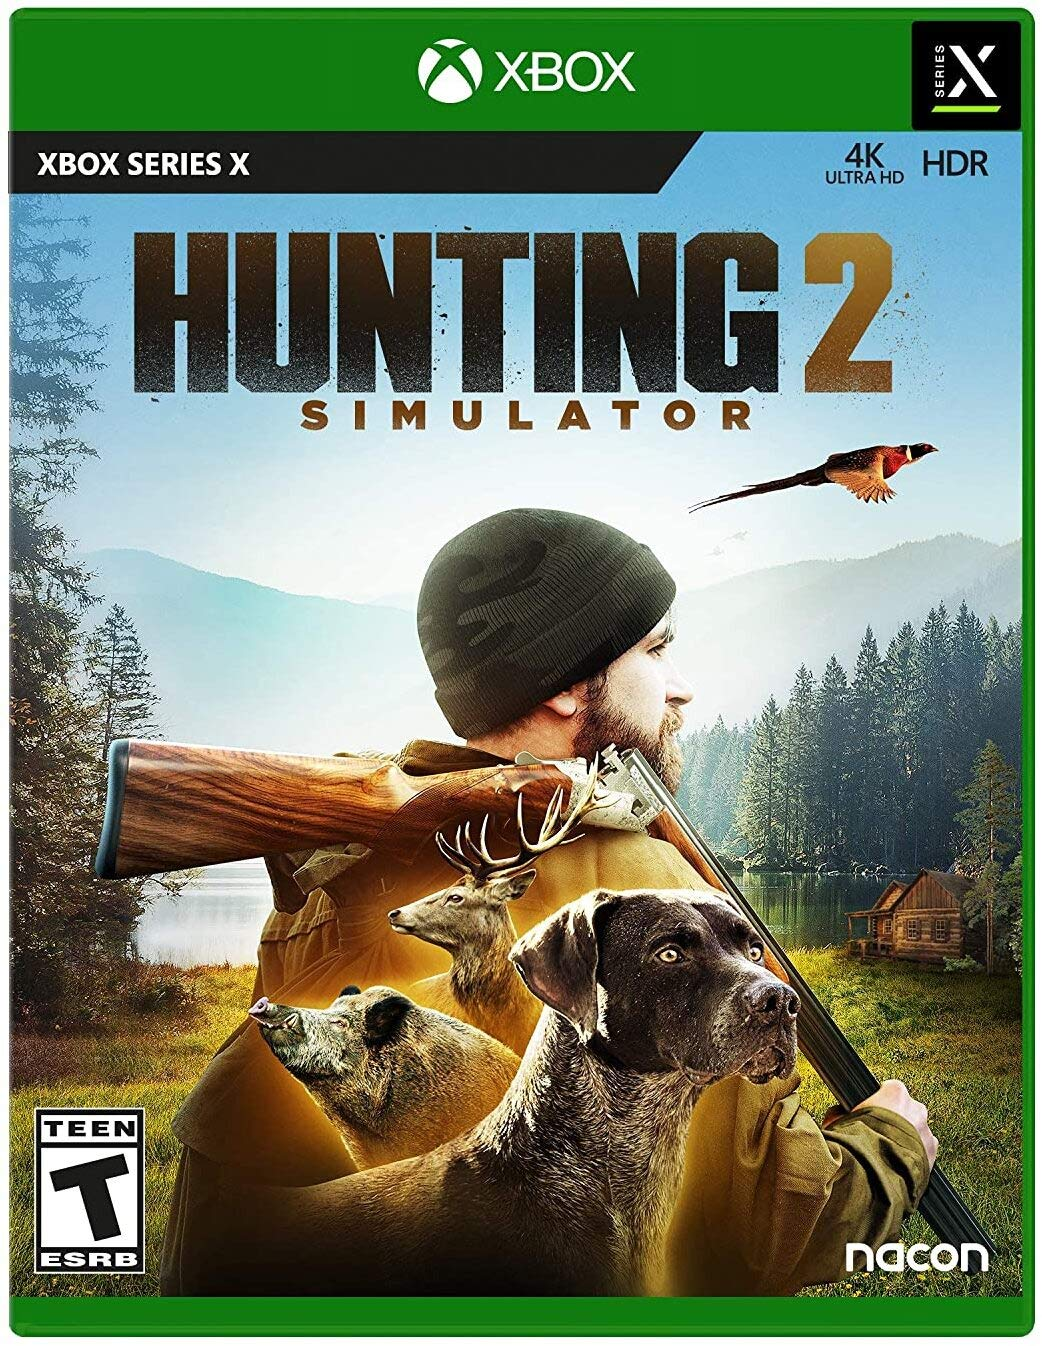 XBSX Hunting Simulator 2